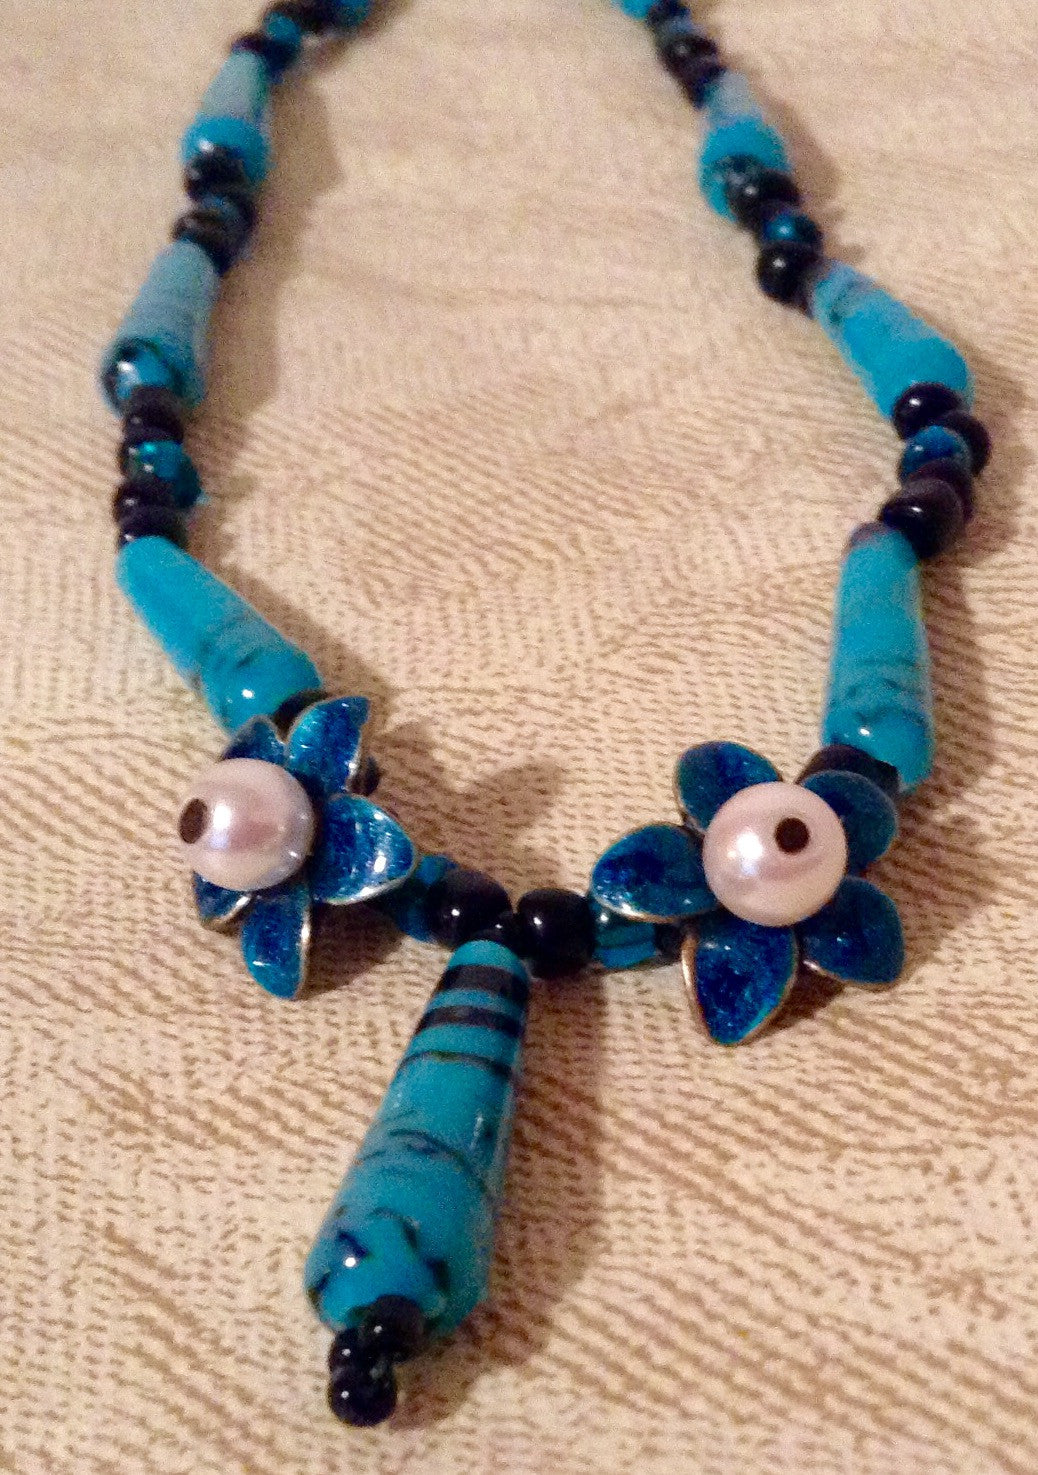 Turquoise Glass Bead Necklace and Earrings